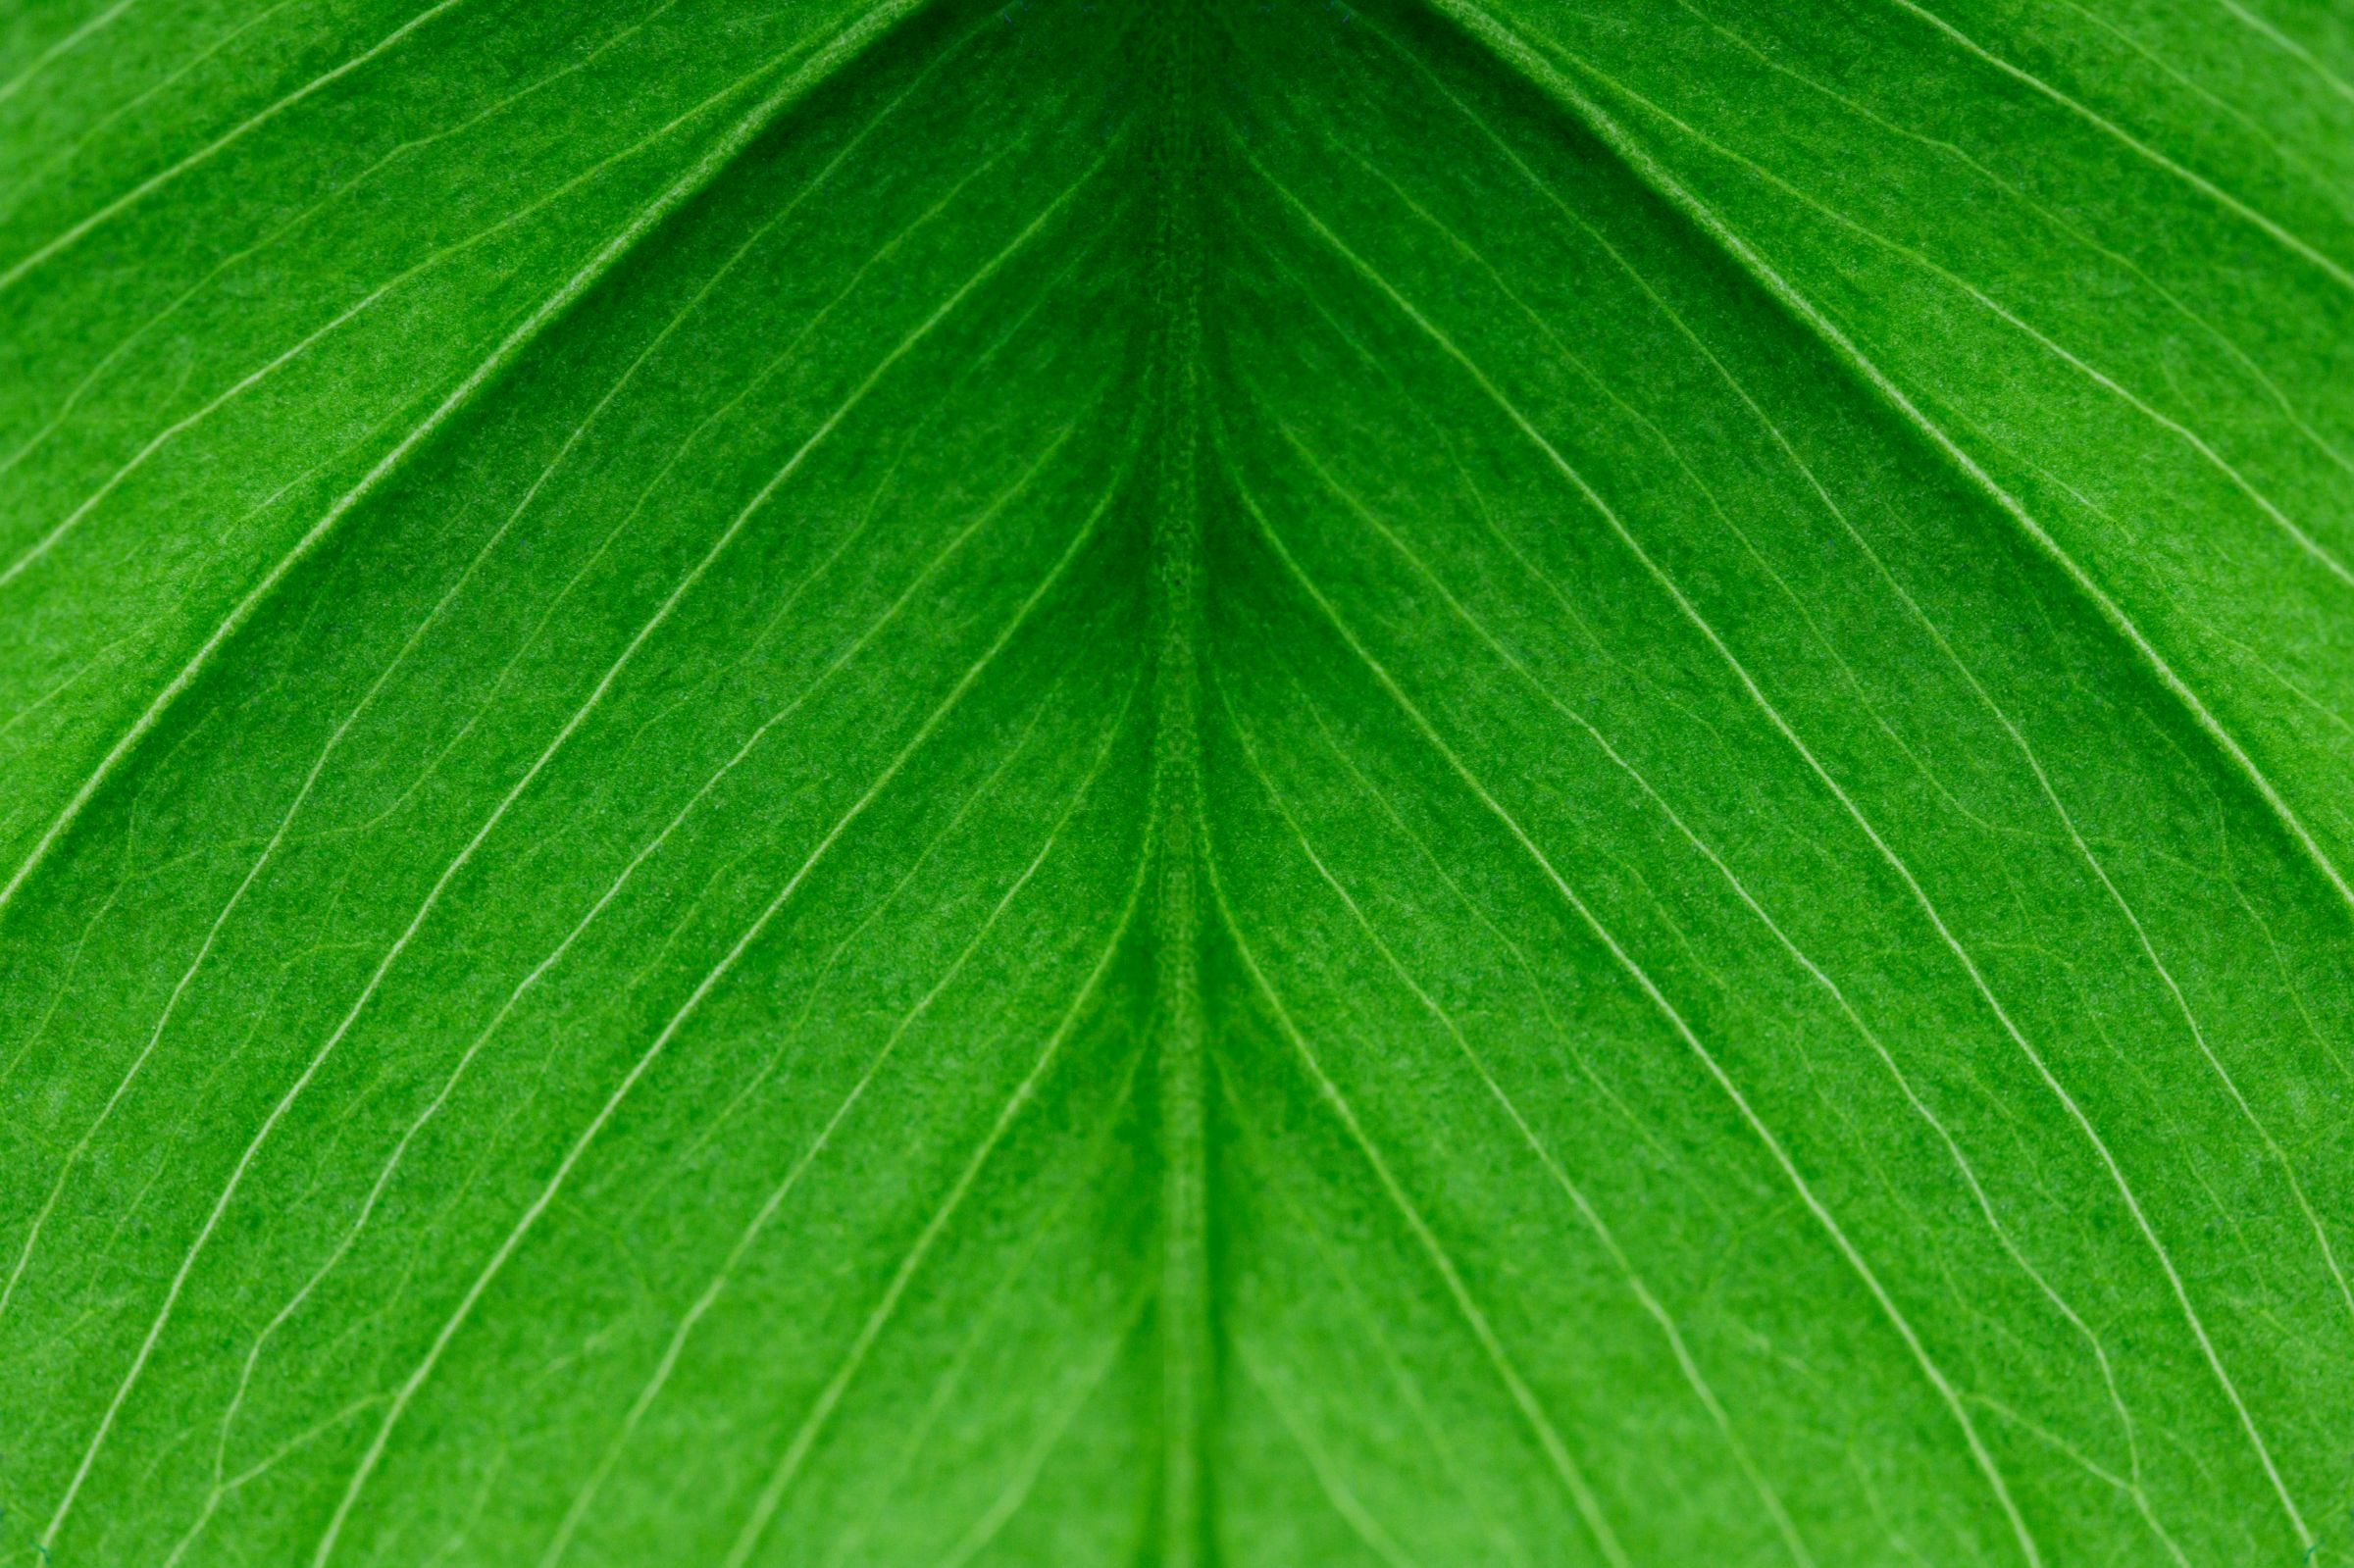 Monstera Leaf Close Up Image Beautiful Green Indoor Plant